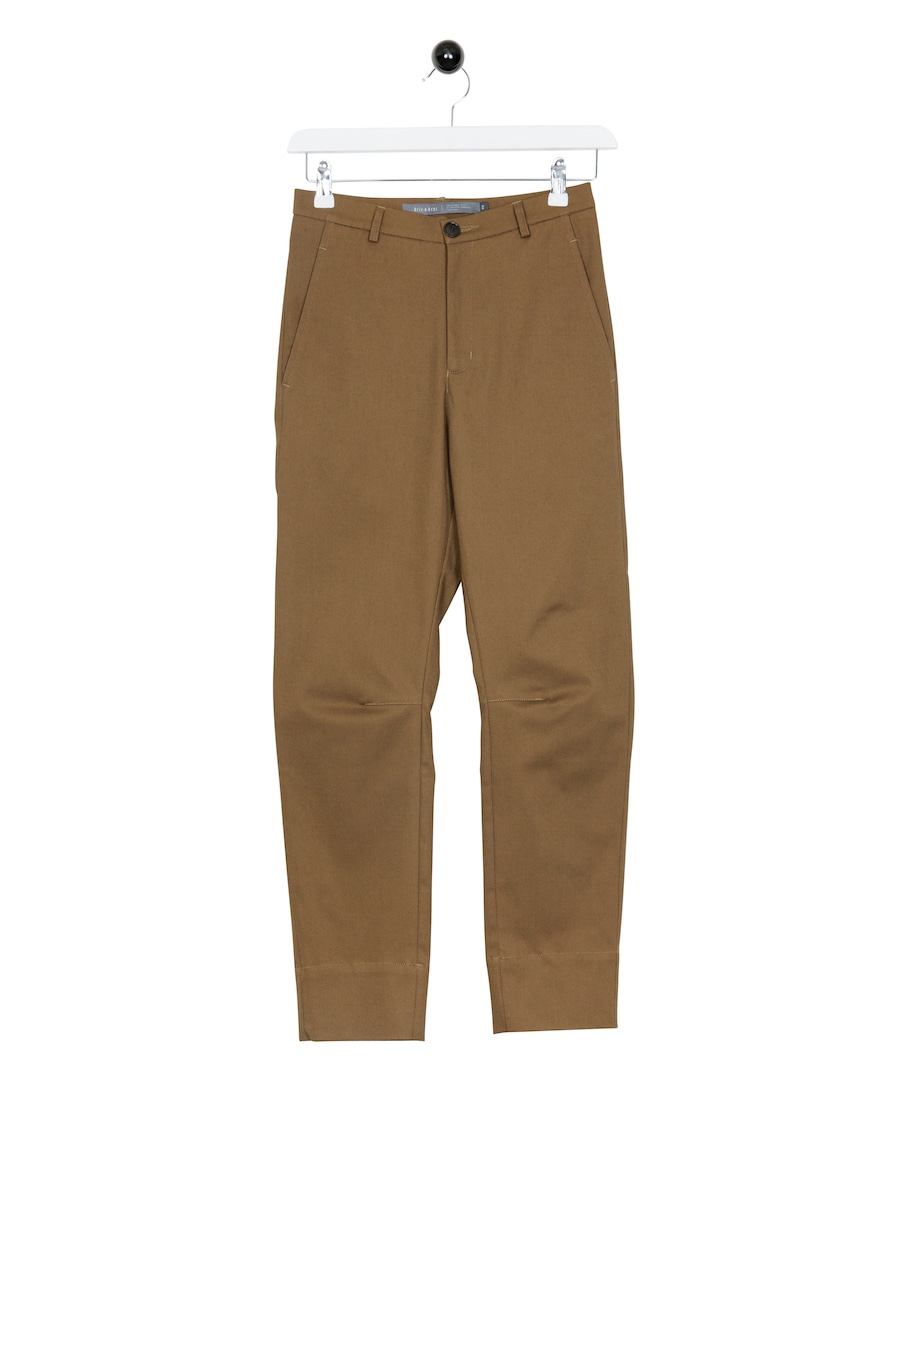 Nest Point Trousers